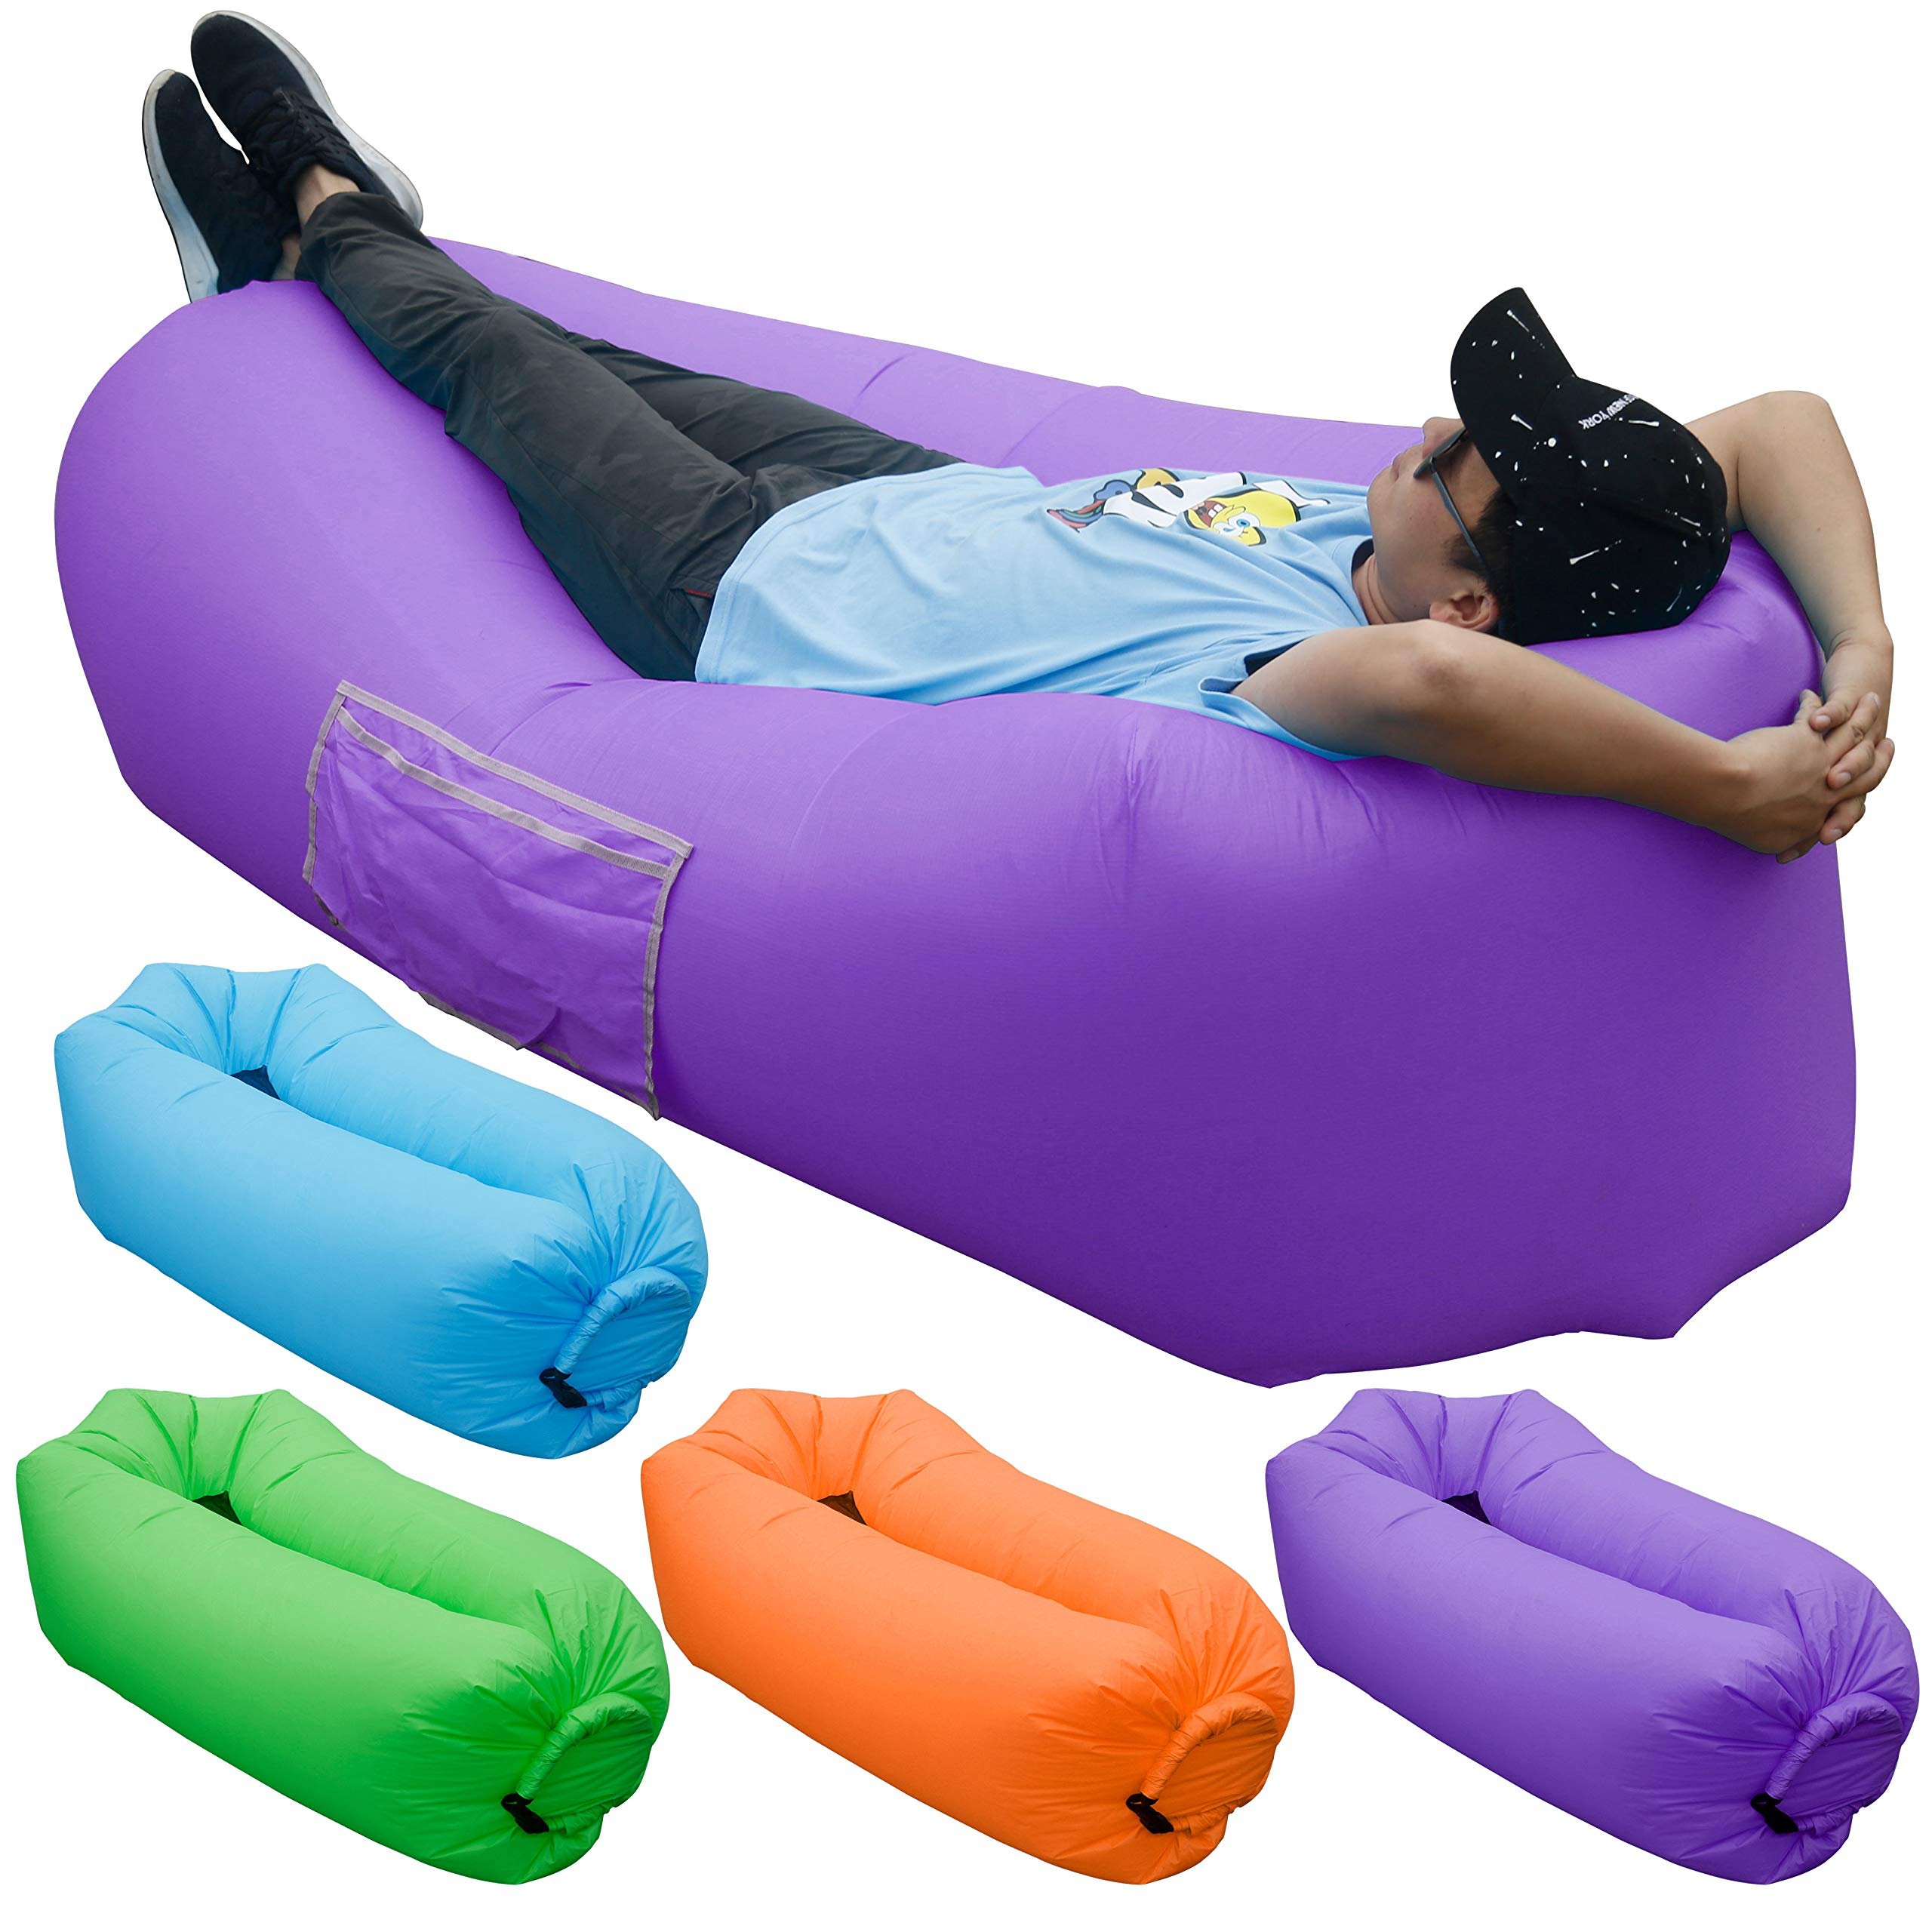 Maple Leaf Inflatable Sofa, Portable Inflatable Lounge Chair for Beach Gear & Sleep Accessories & Camping Couch & Beach Camping & Back Yard Pool Beach Parties,Purple by SKOLOO